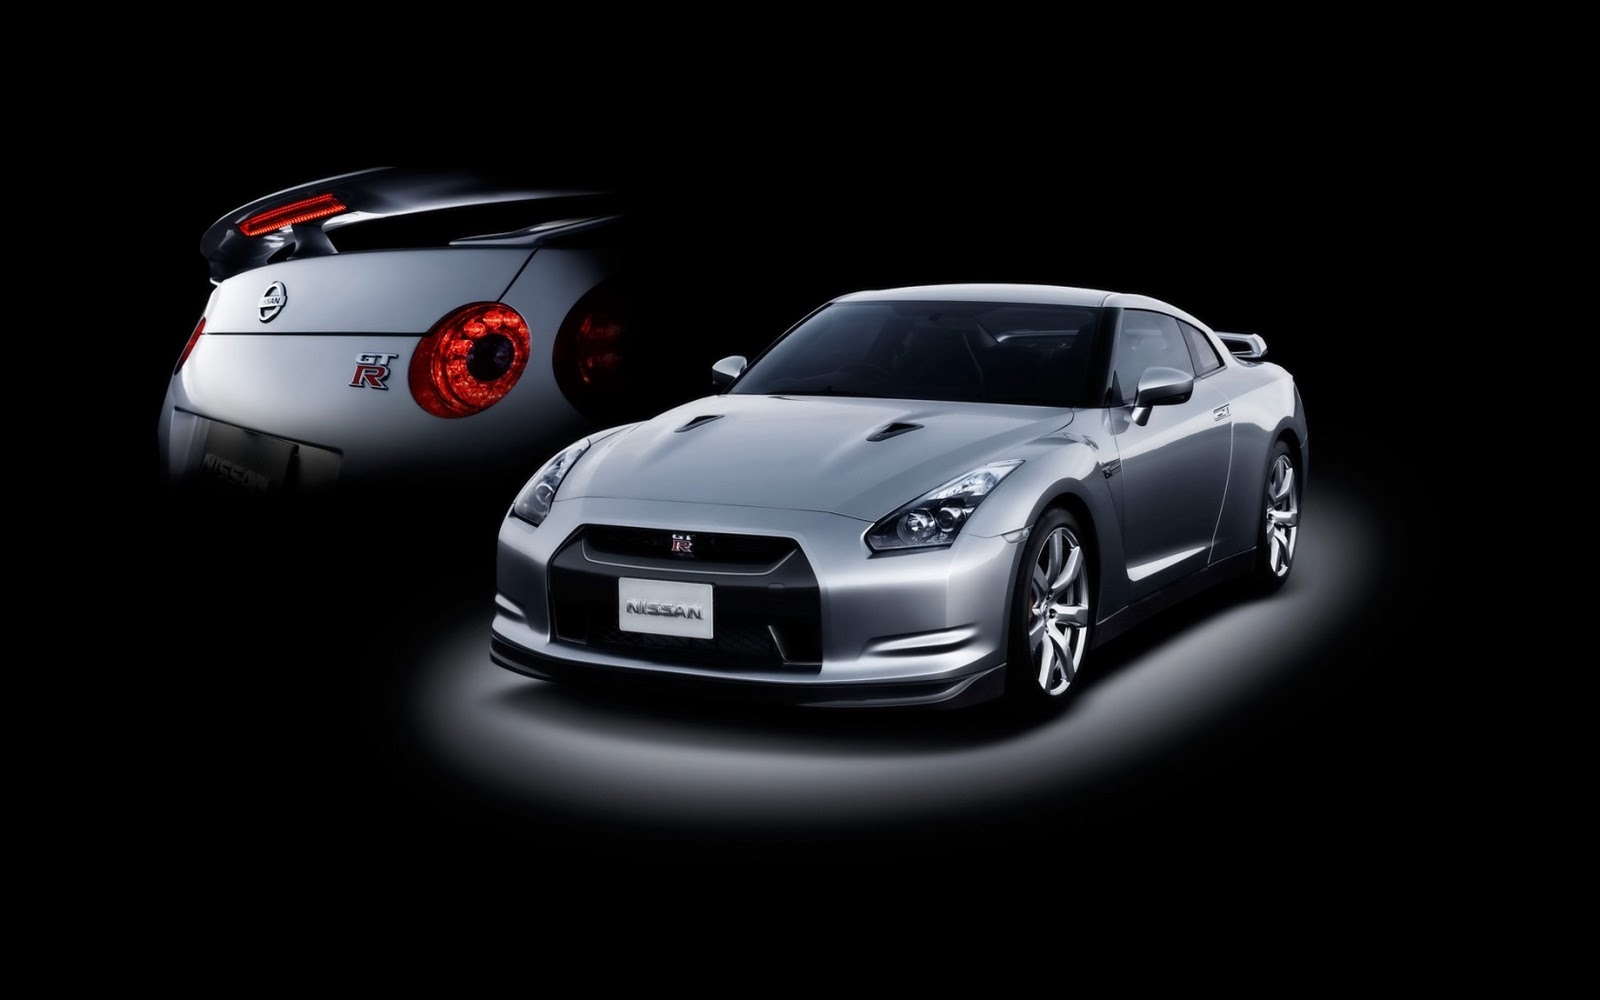 Car Automobile World Pics Of Nissan Gtr Car